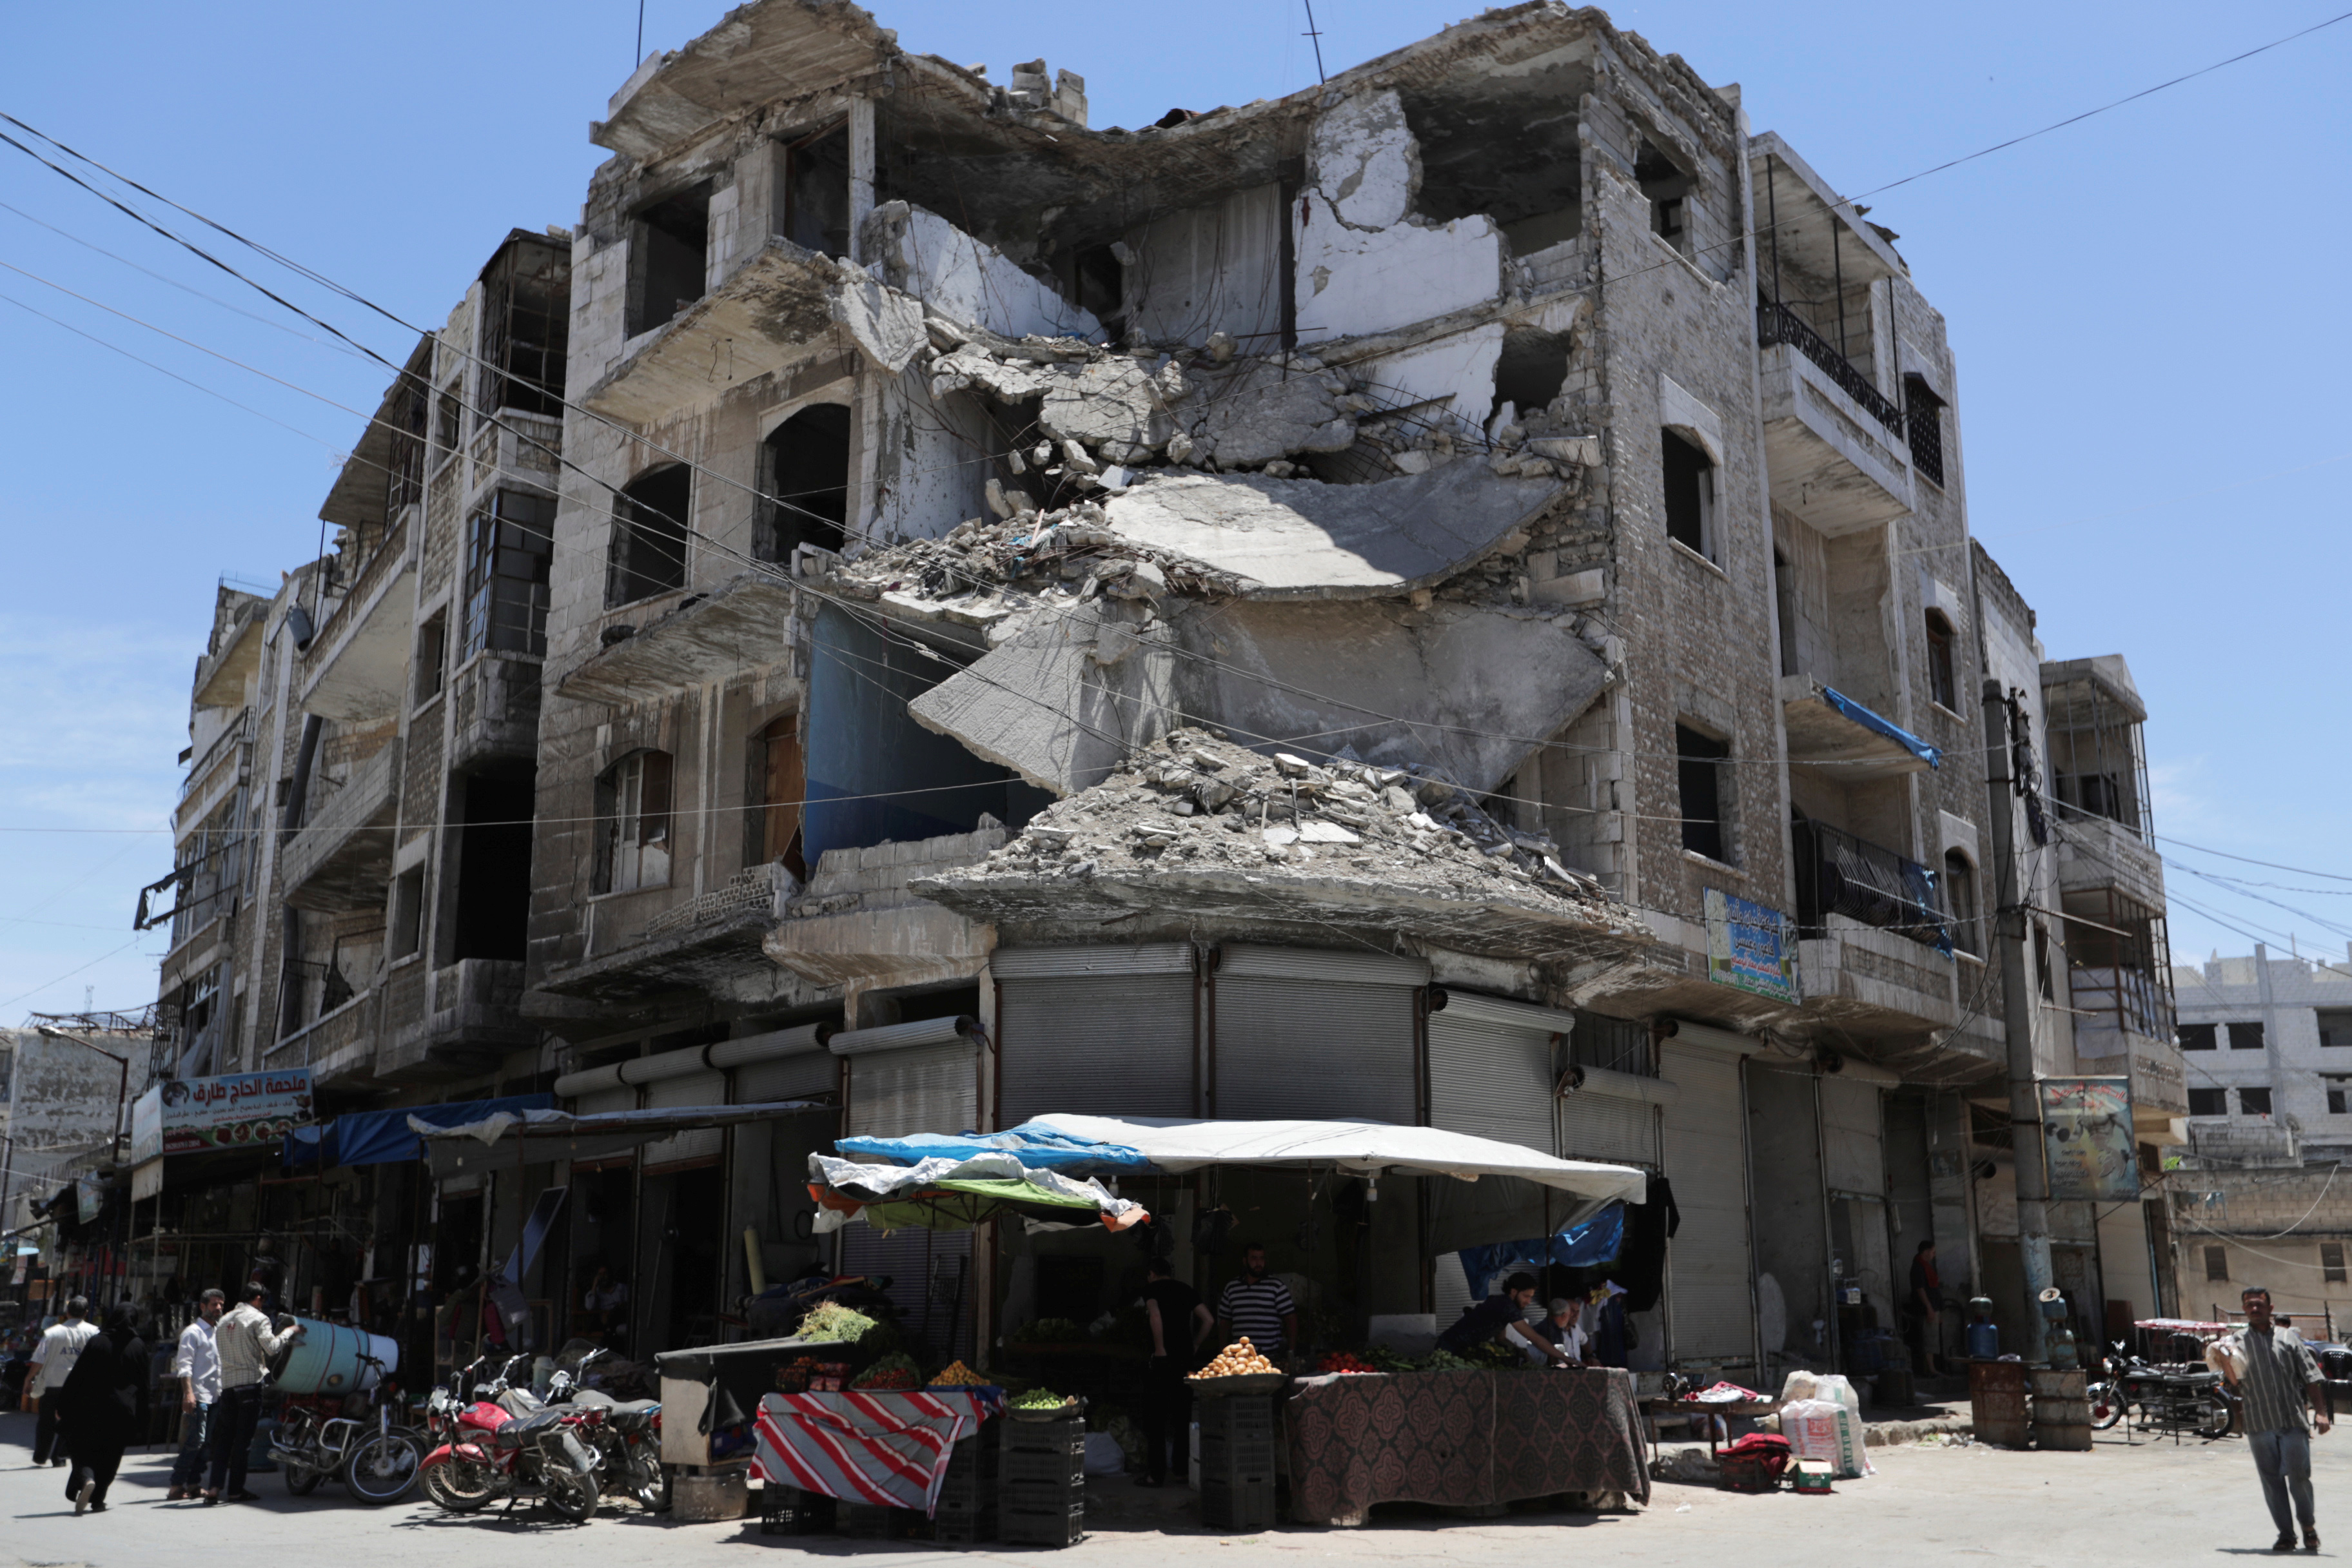 People walk past a damaged building in the city of Idlib, Syria May 25, 2019. REUTERS/Khalil Ashawi